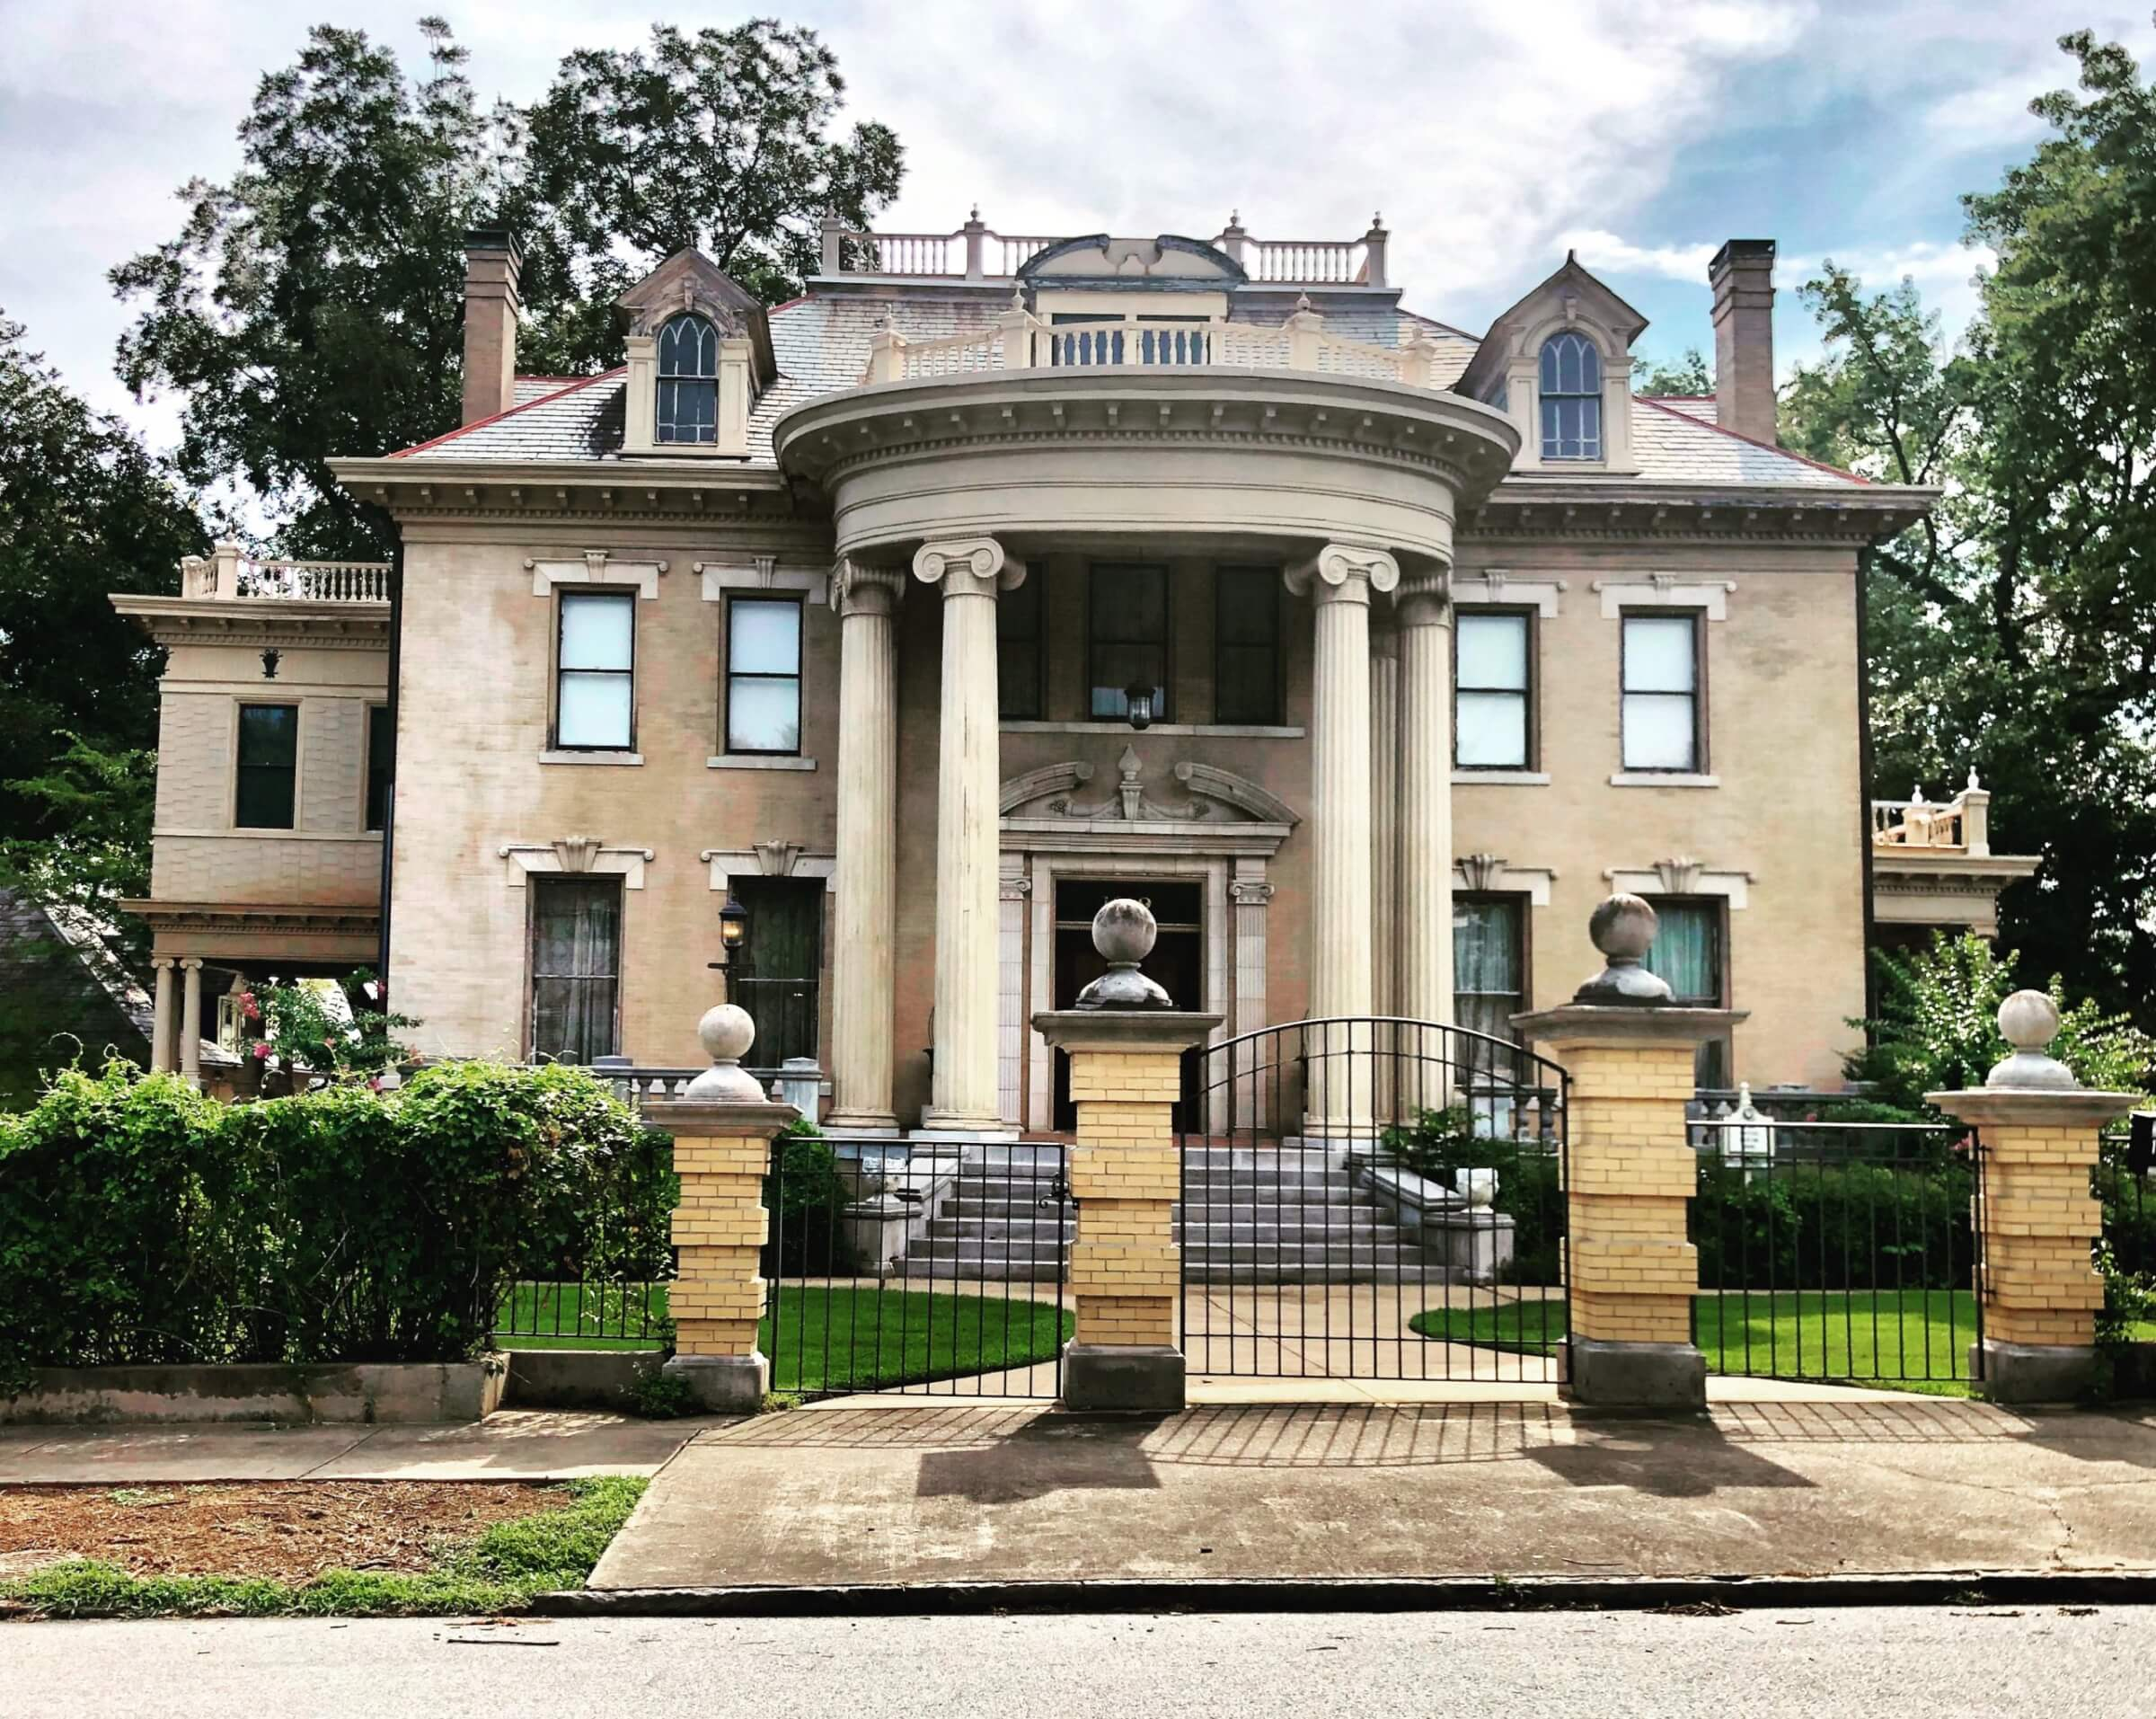 A gorgeous mansion shown on a sunny day, home to one of Matot's high-quality residential dumbwaiters.